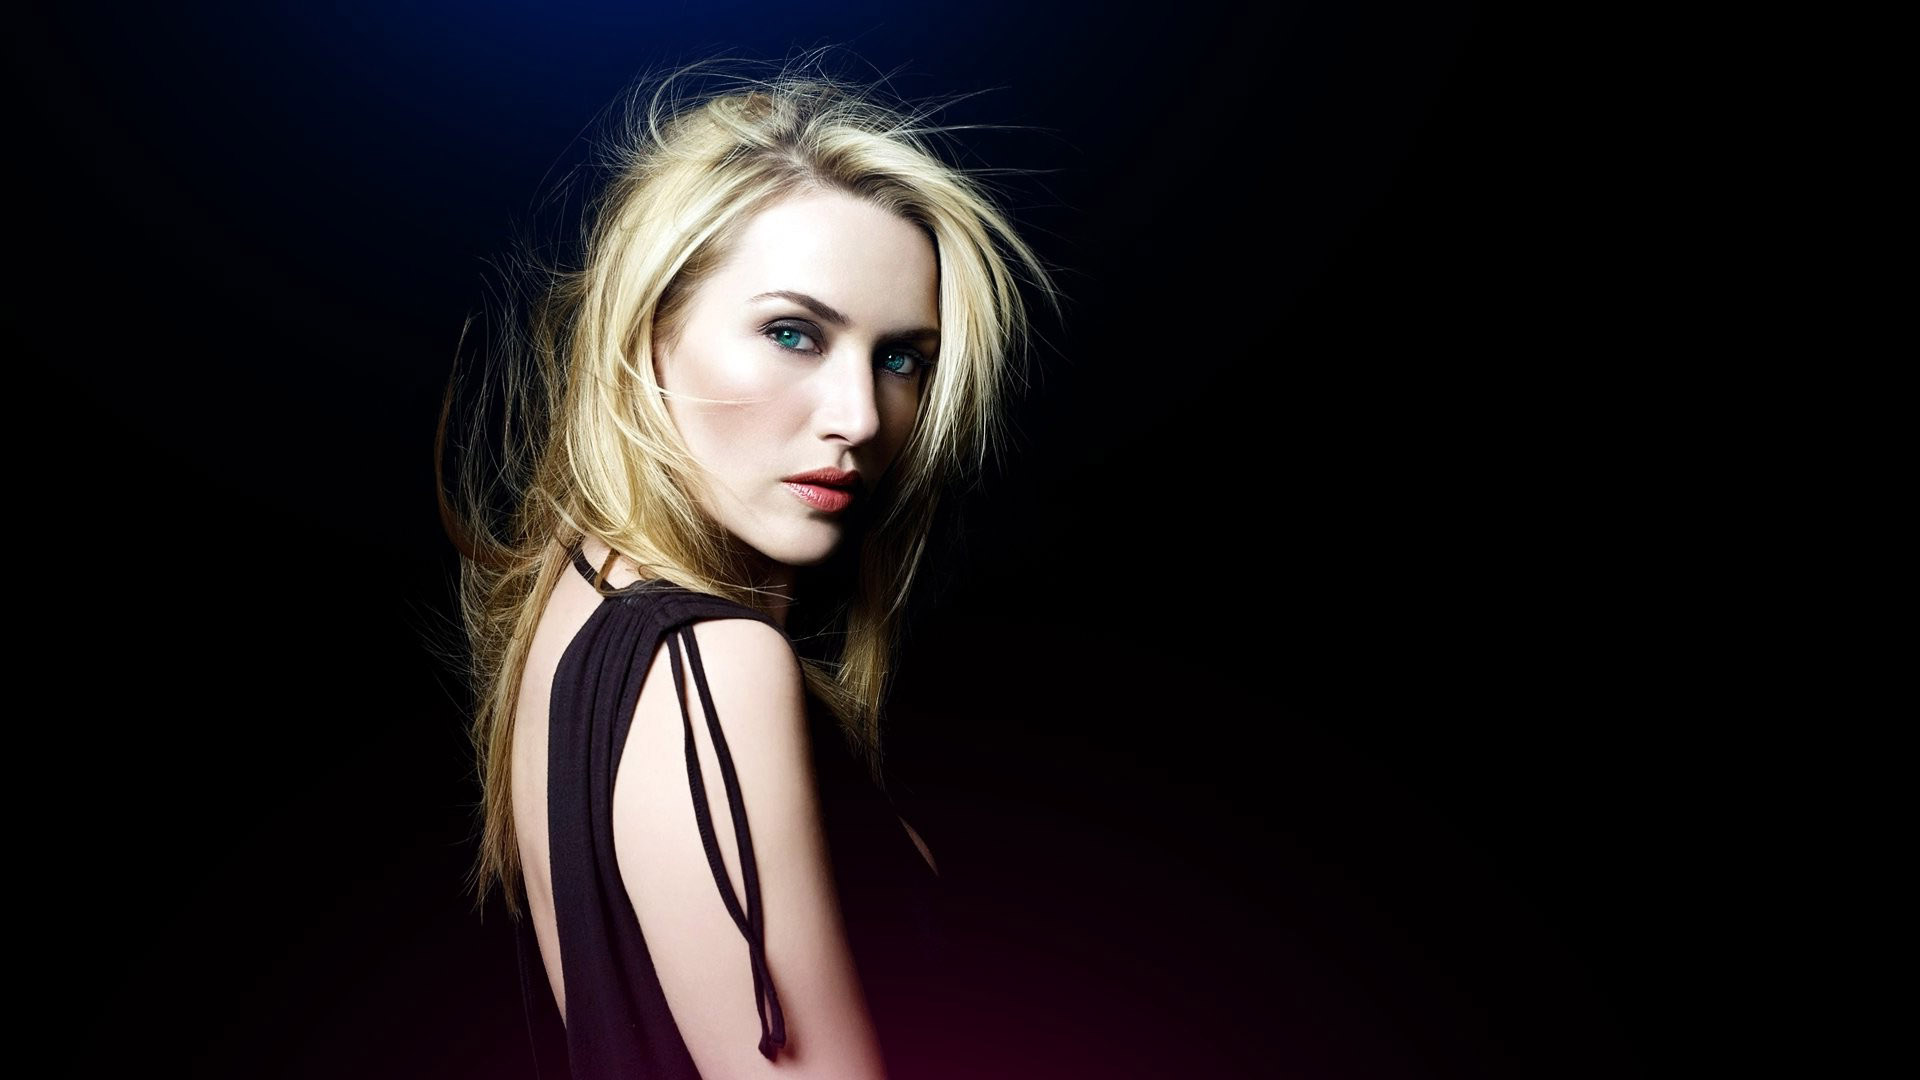 Kate winslet beautiful desktop hd wallpaper